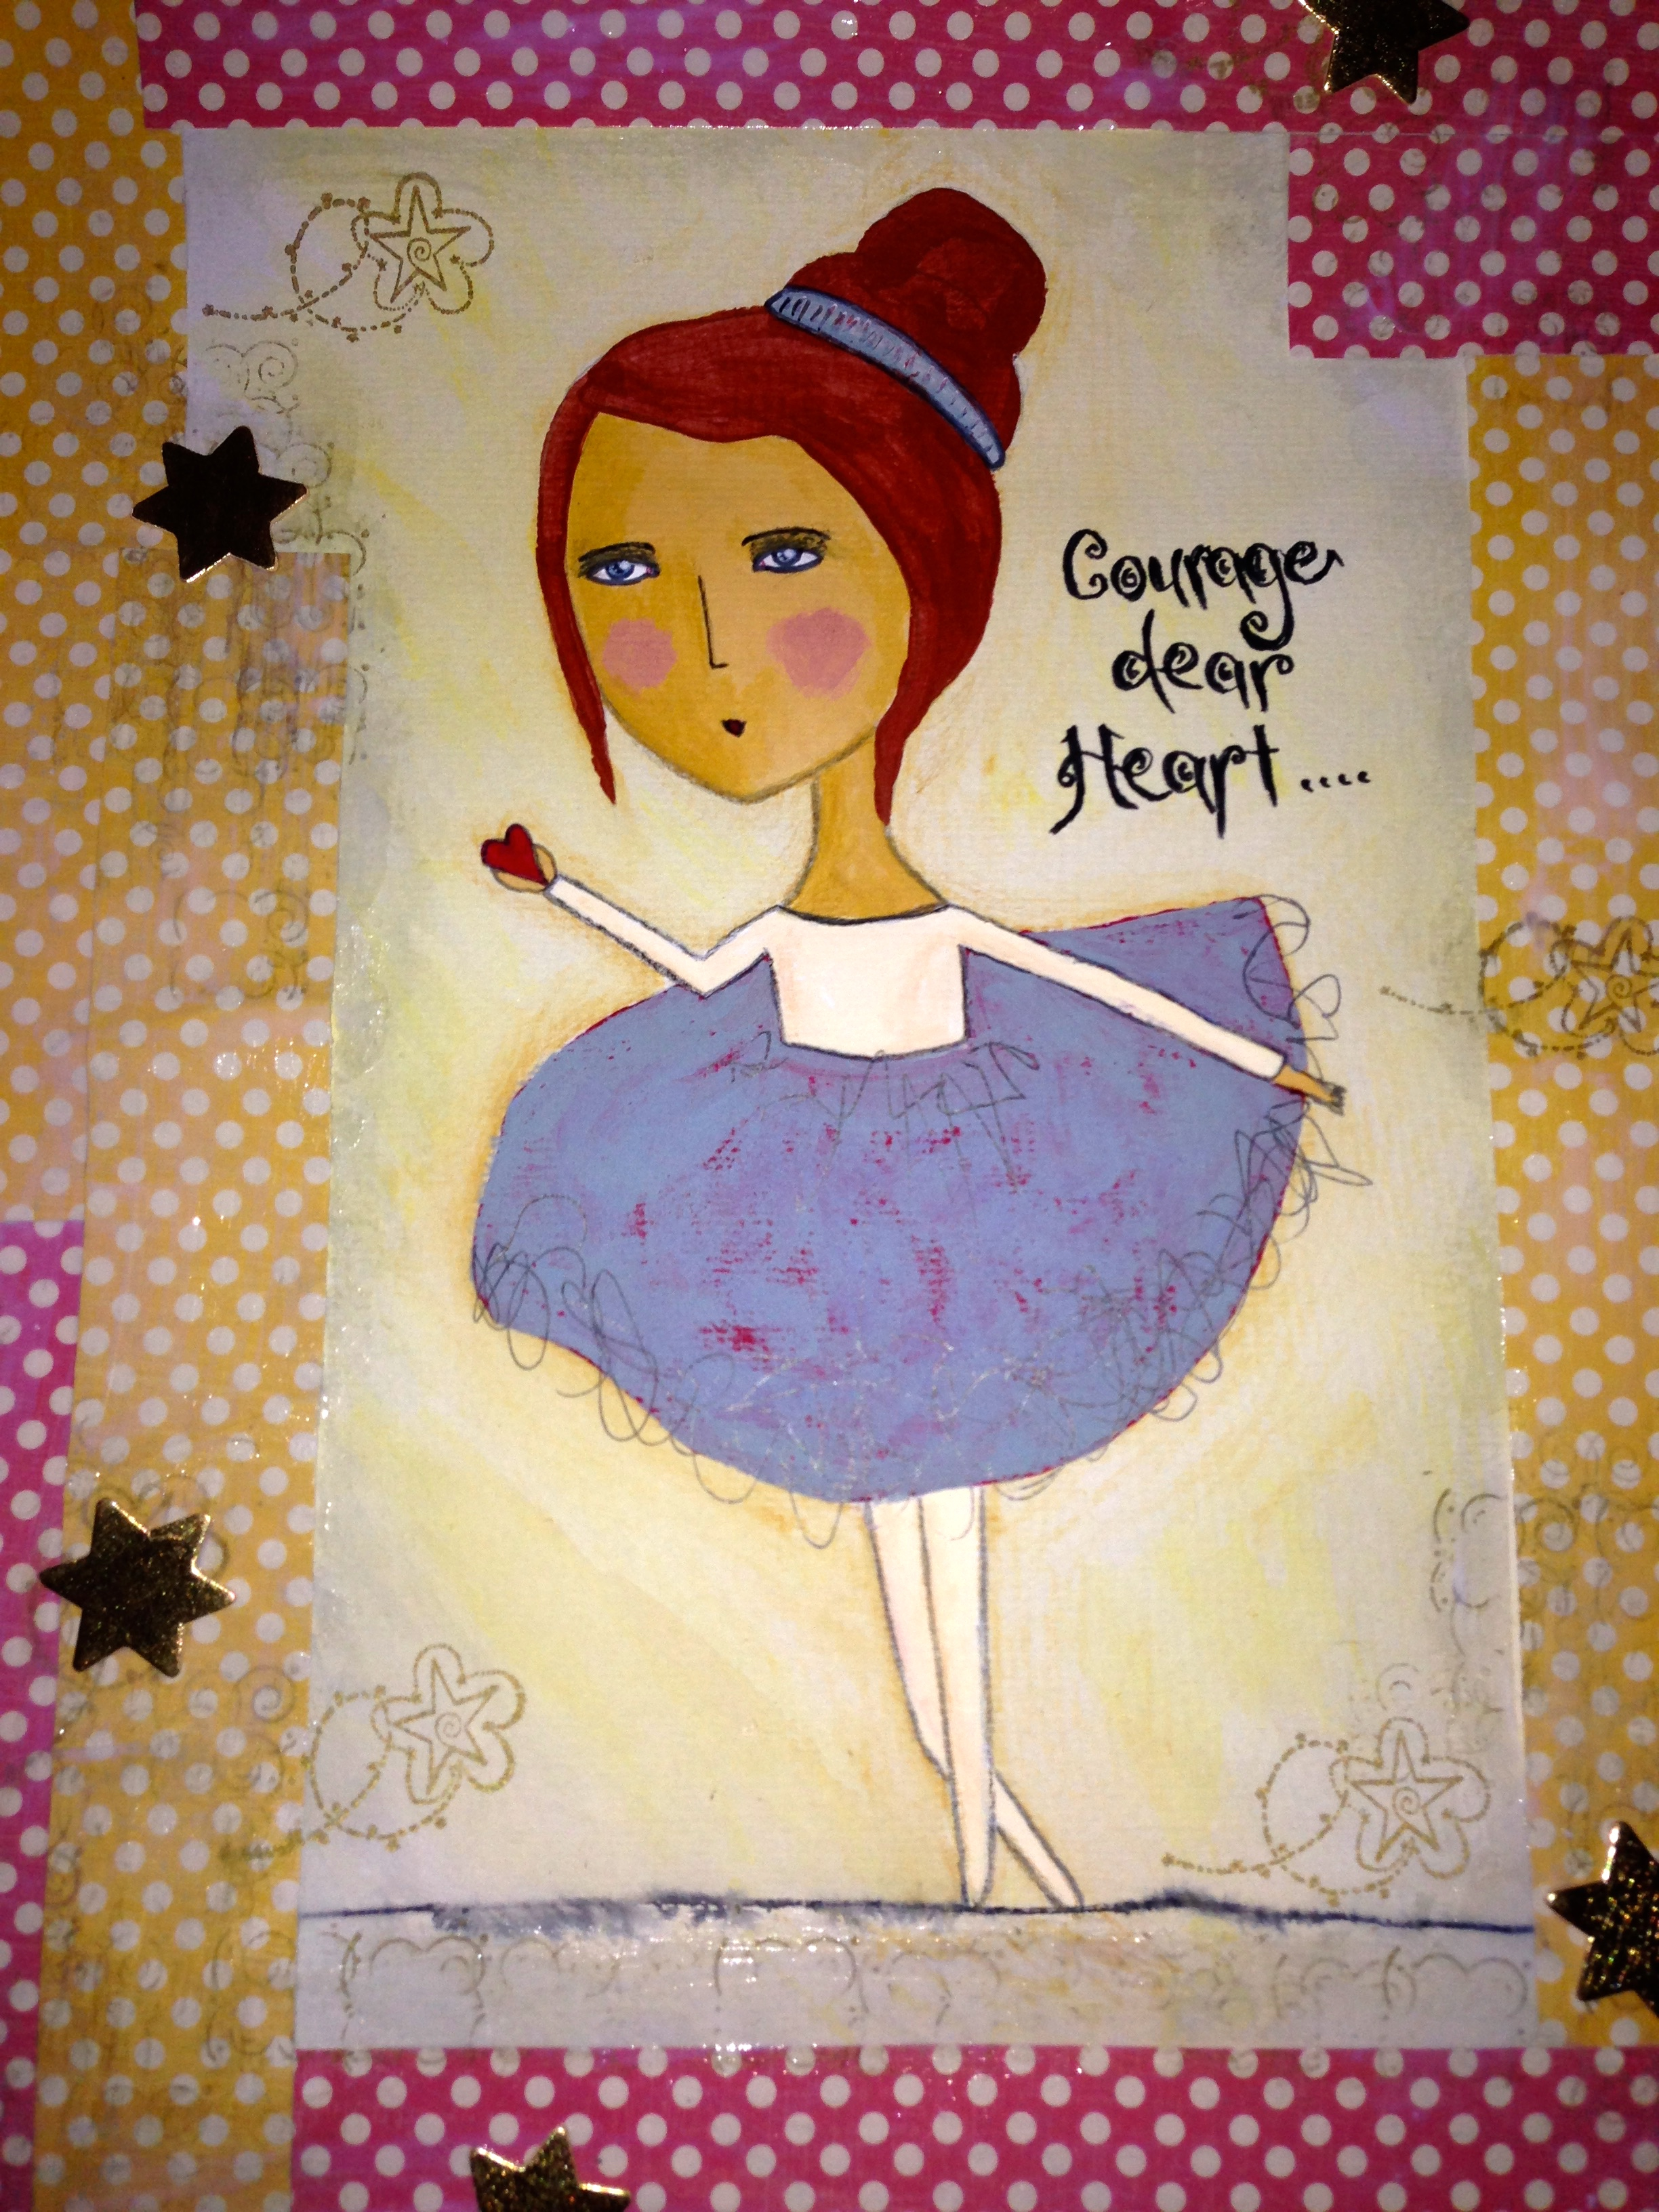 0152 Courage Dear Heart